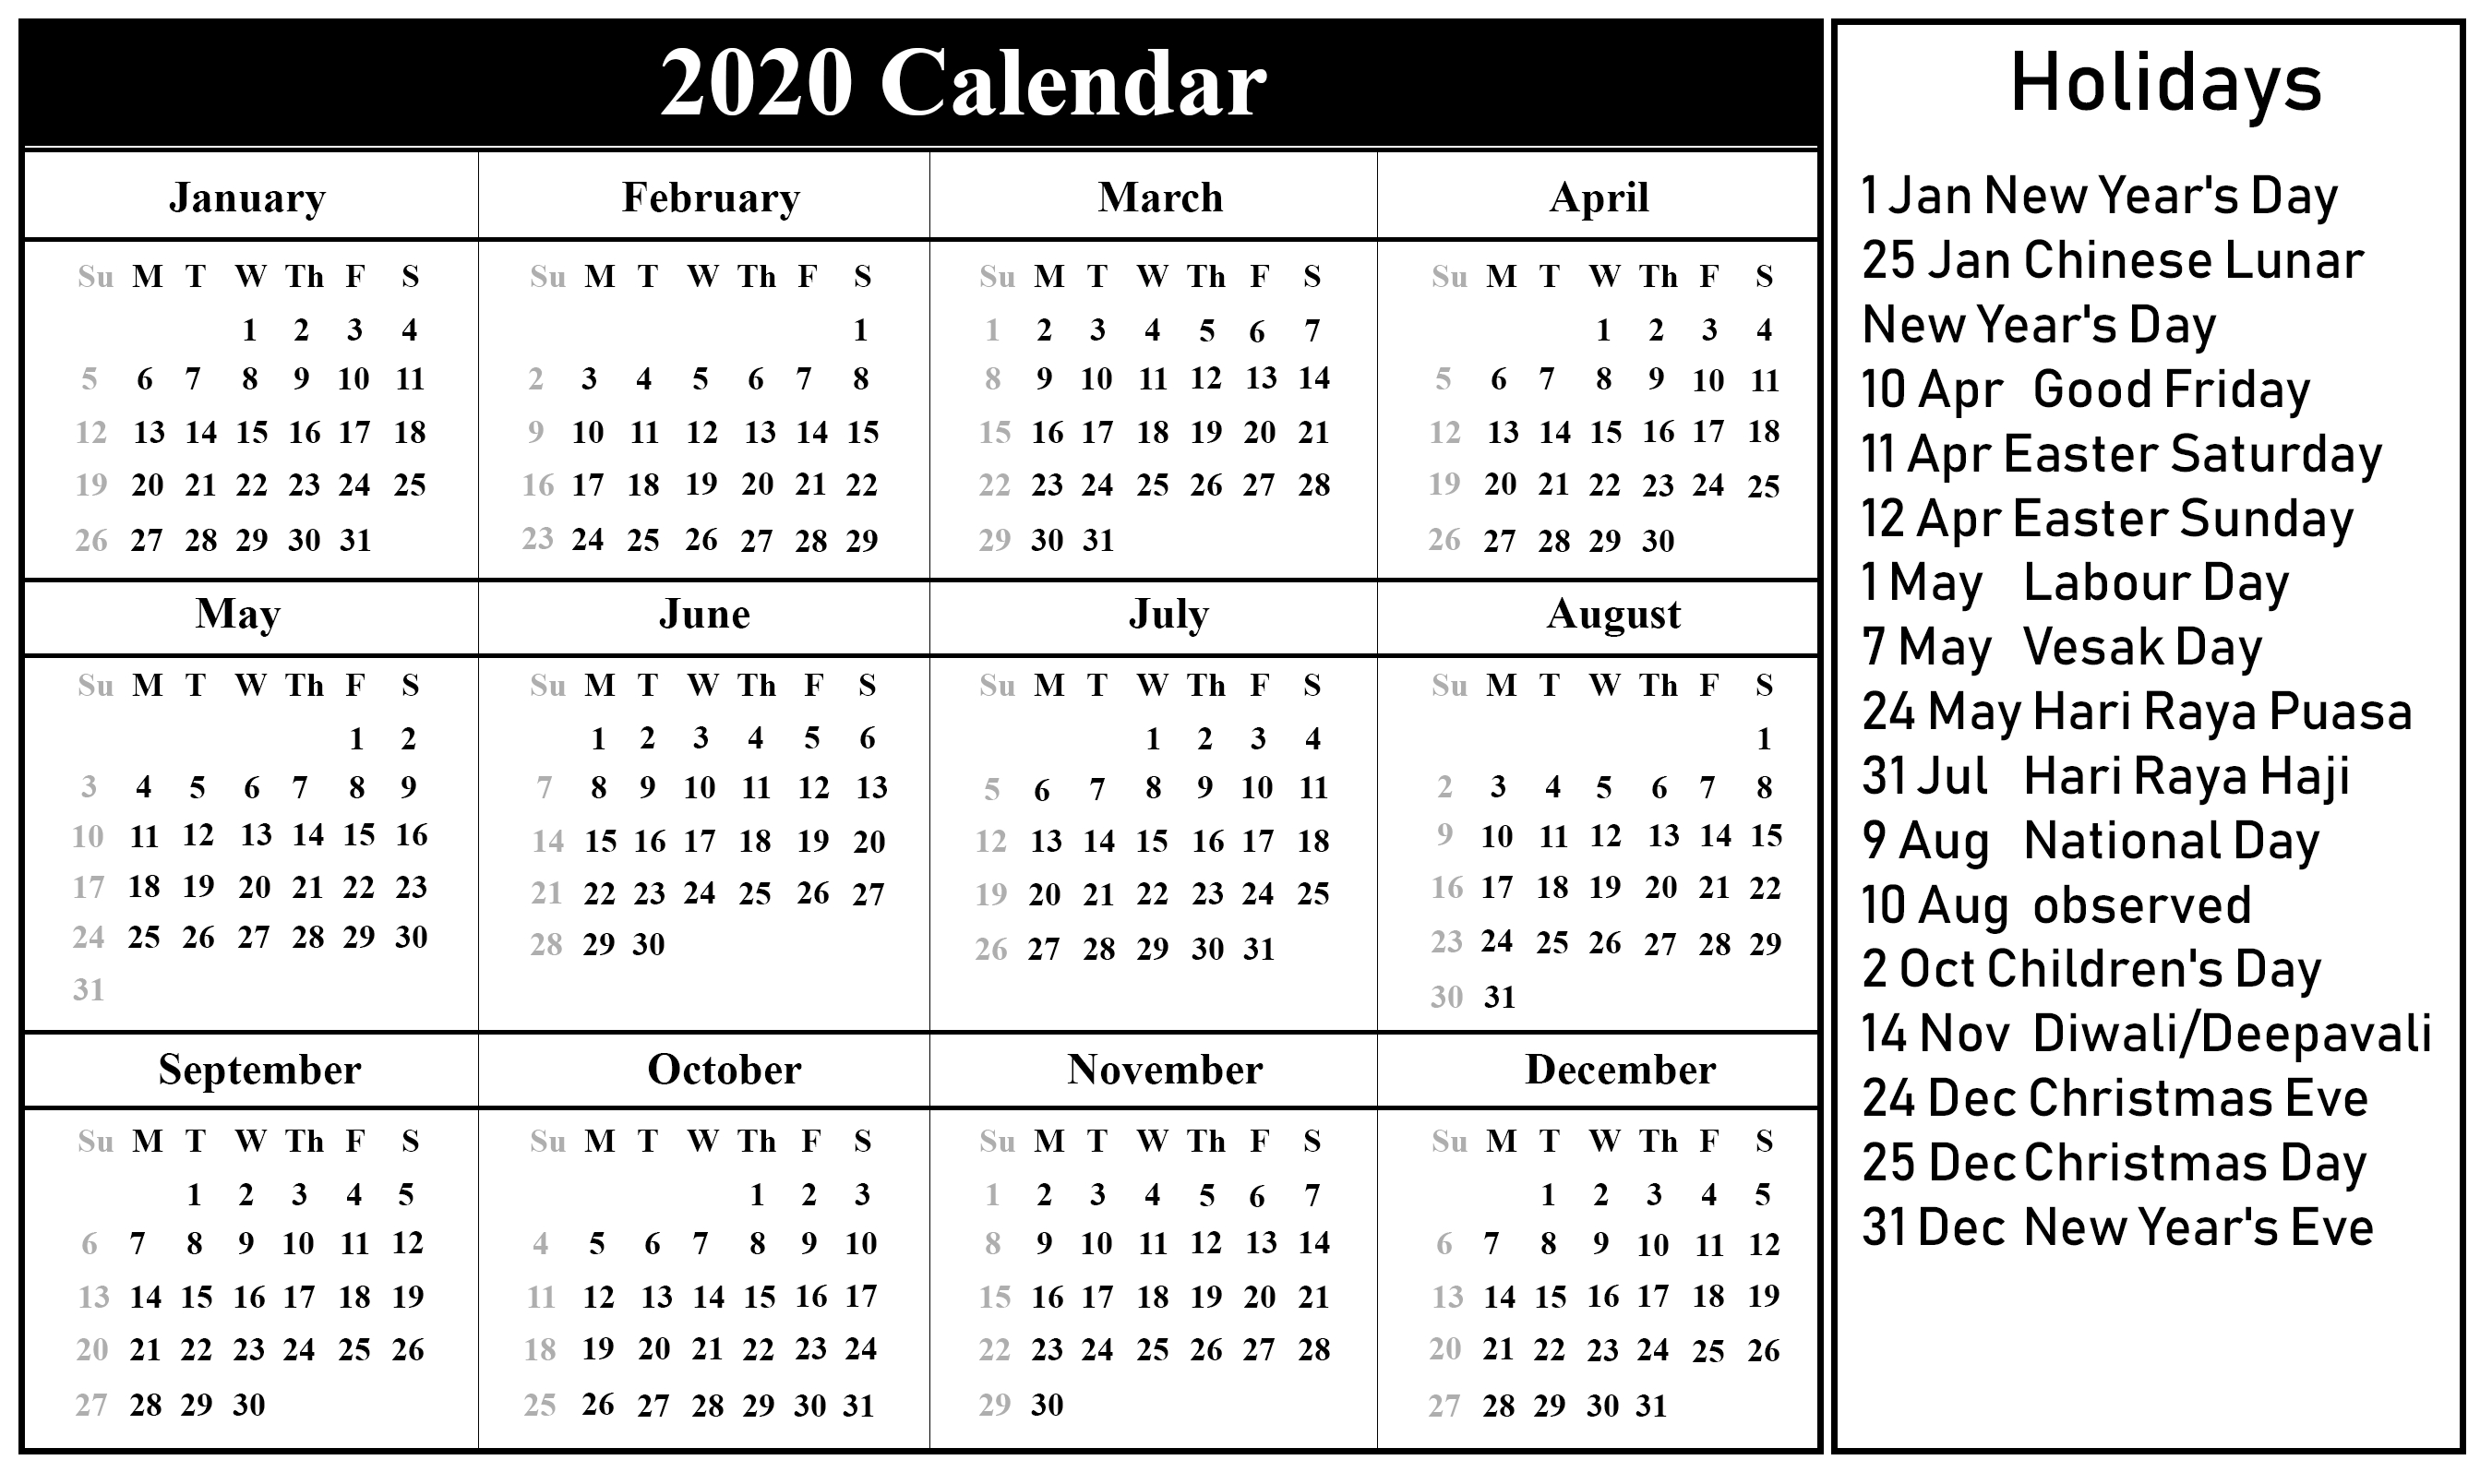 Calendar 2020 With Holidays Excel  Bolan.horizonconsulting.co with regard to Jan 2020 Holiday